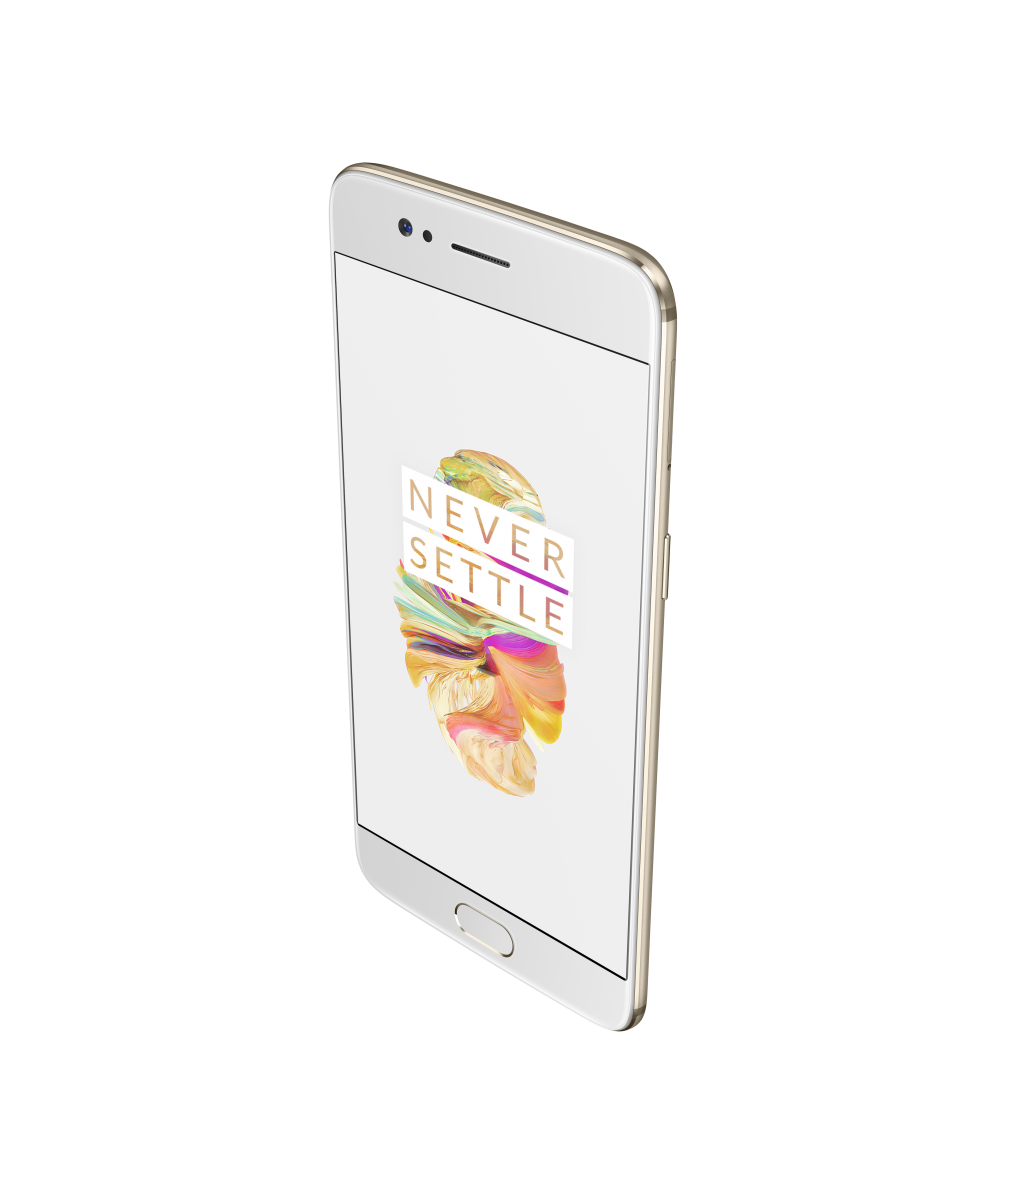 Soft Gold colour OnePlus 5 launched in India